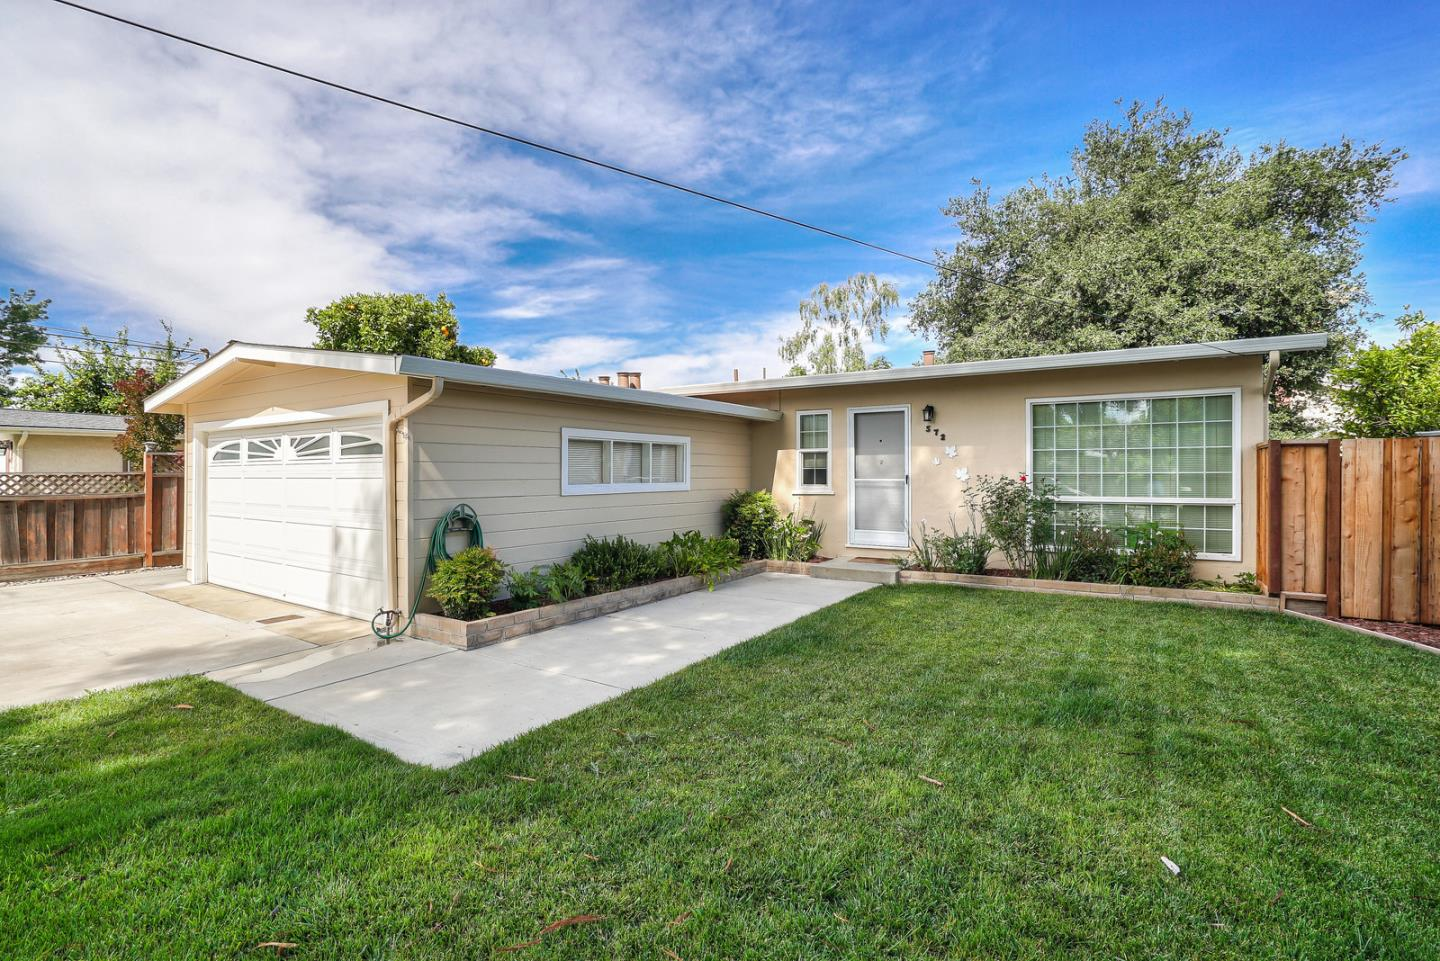 Detail Gallery Image 1 of 34 For 572 Weston Dr, Campbell, CA, 95008 - 3 Beds | 1 Baths